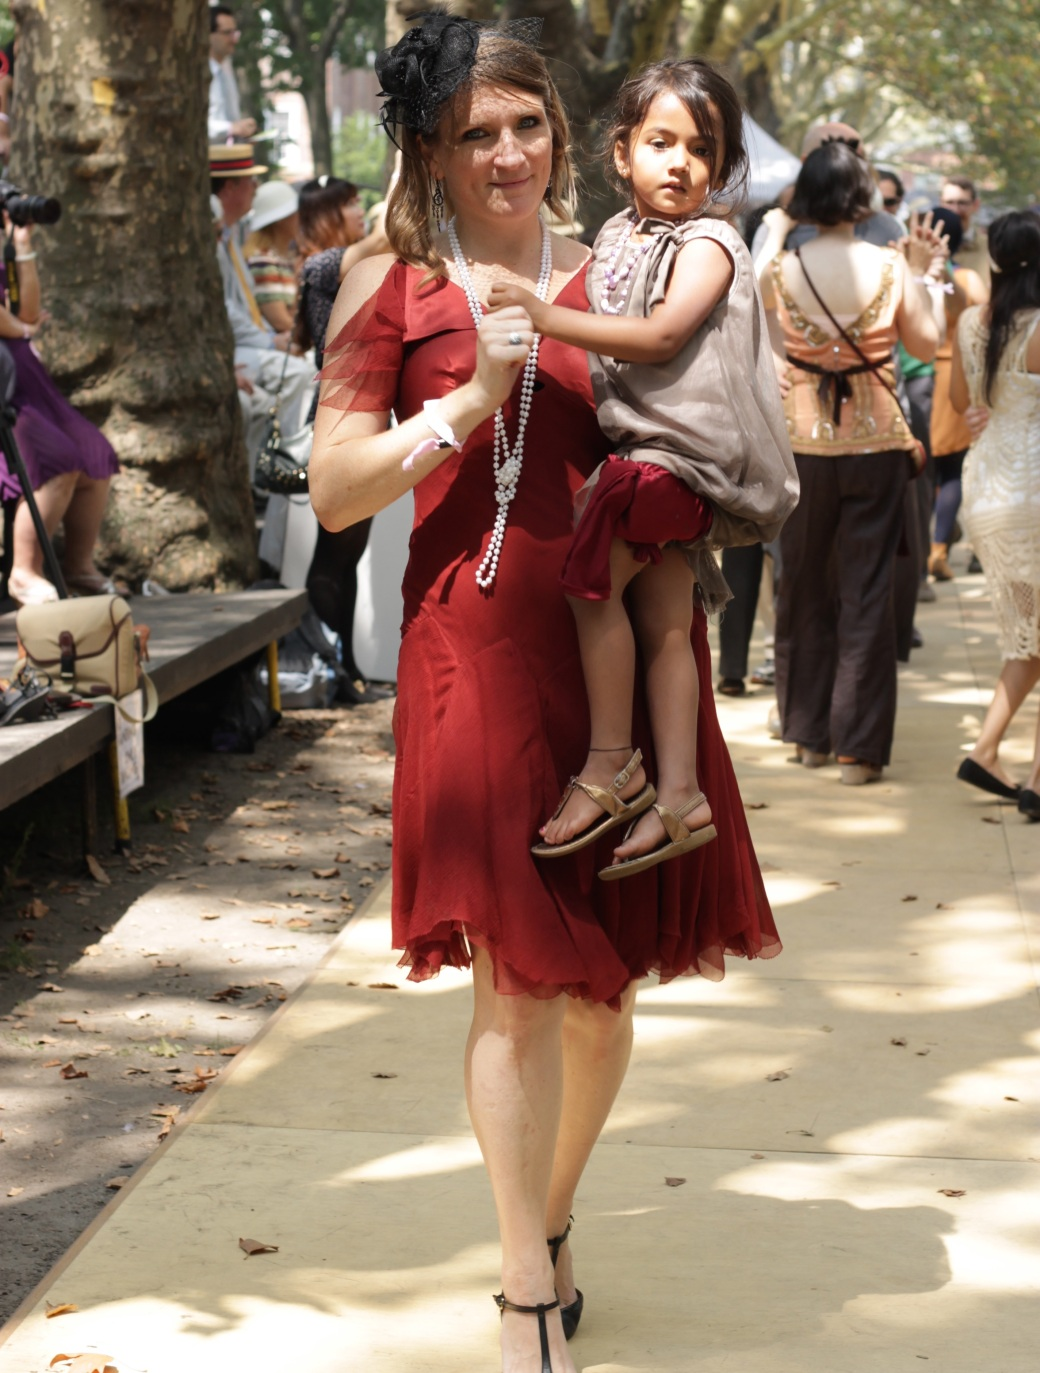 new york city governors island jazz age lawn party august 17 2014 55